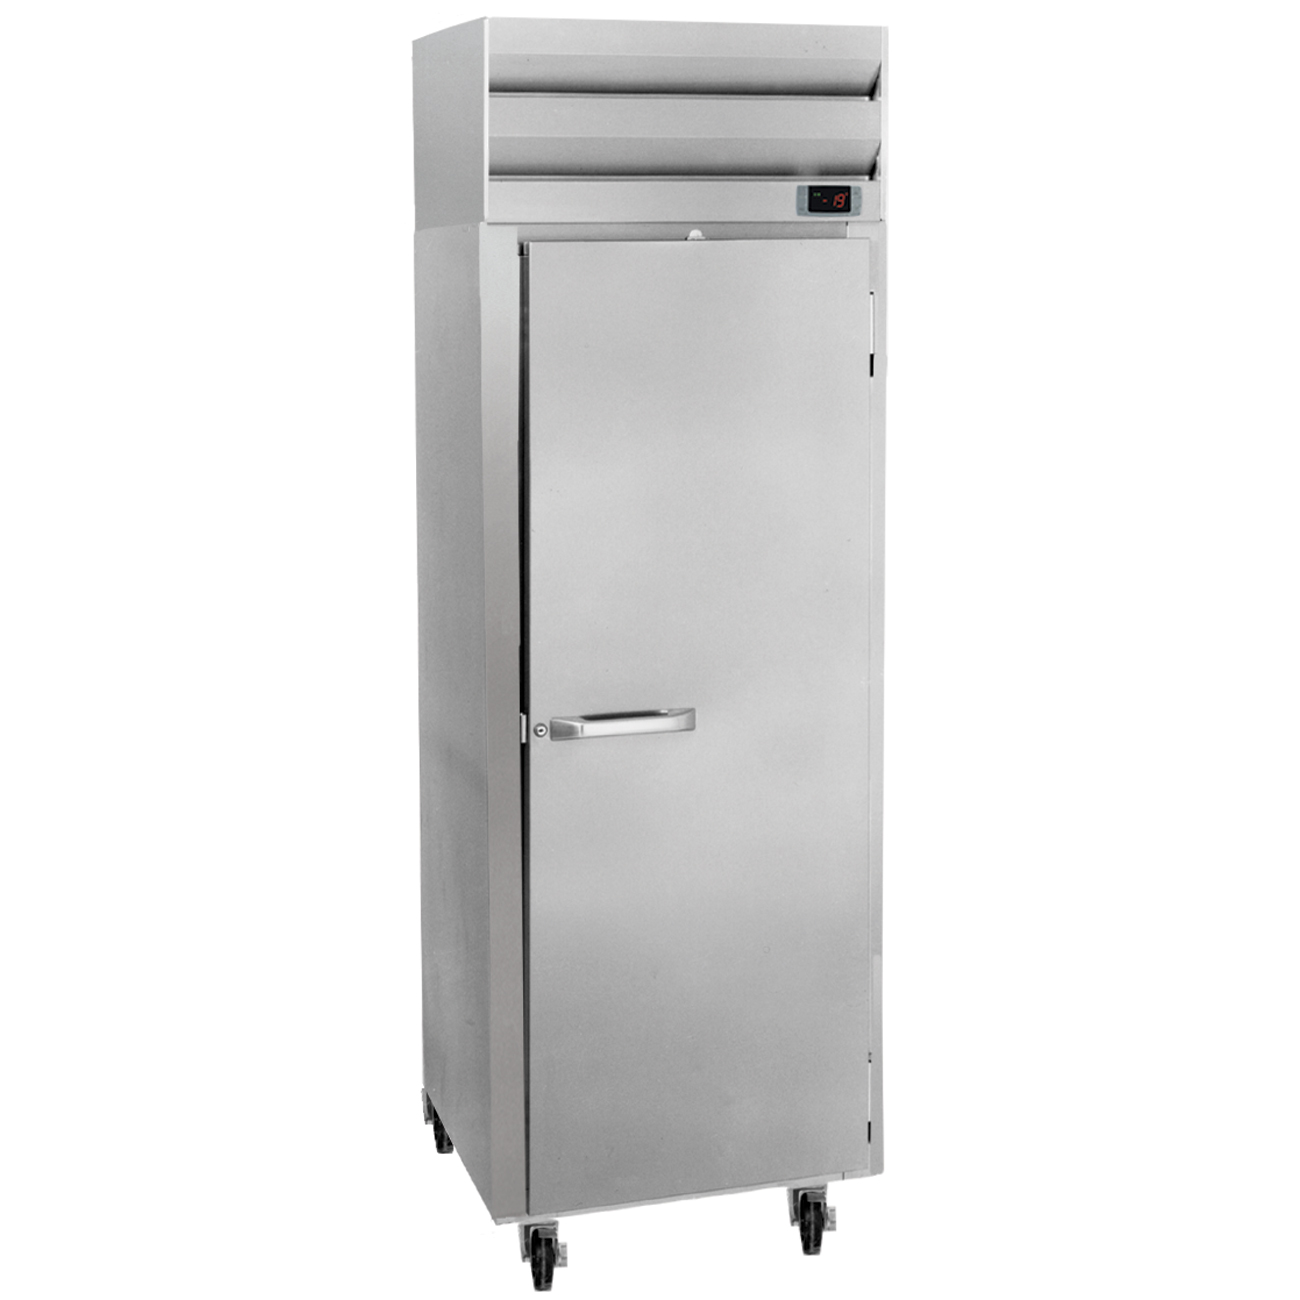 Howard-McCray SF22-LT freezer, reach-in